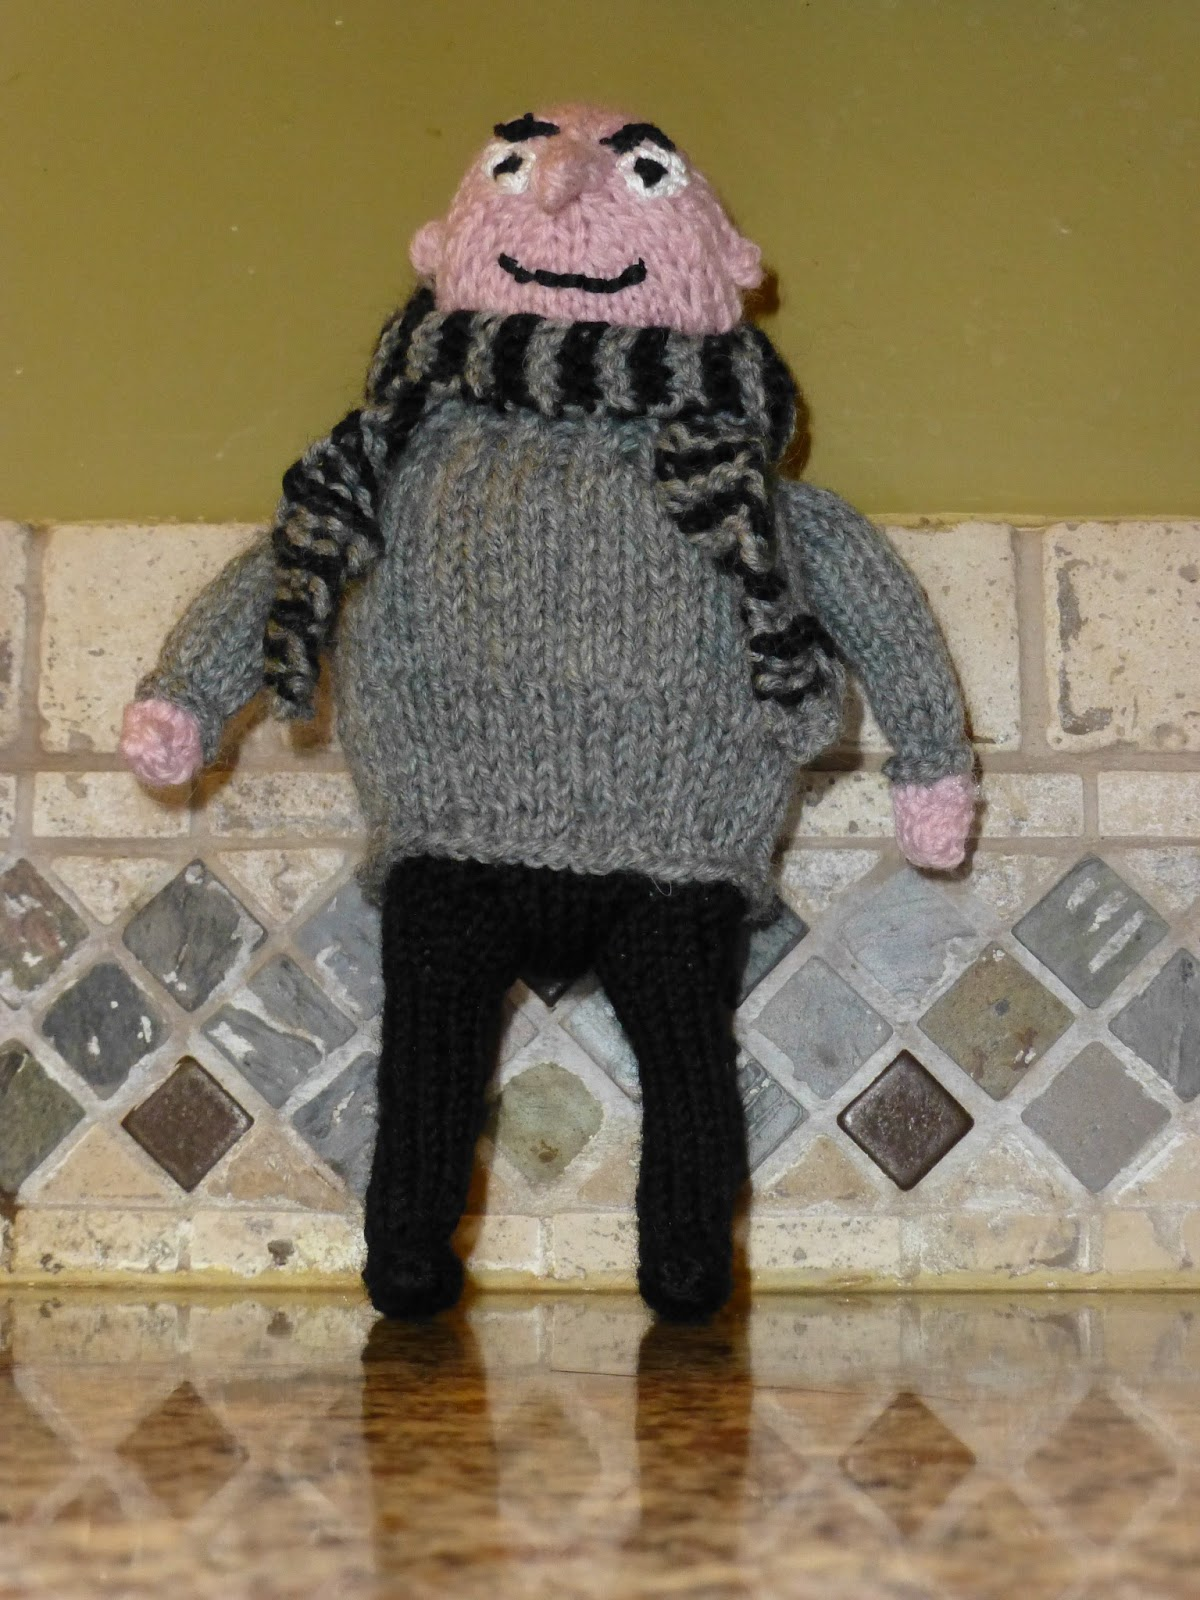 Despicable Me Knitting Patterns : Grannypurl: Despicable Me! Knitted